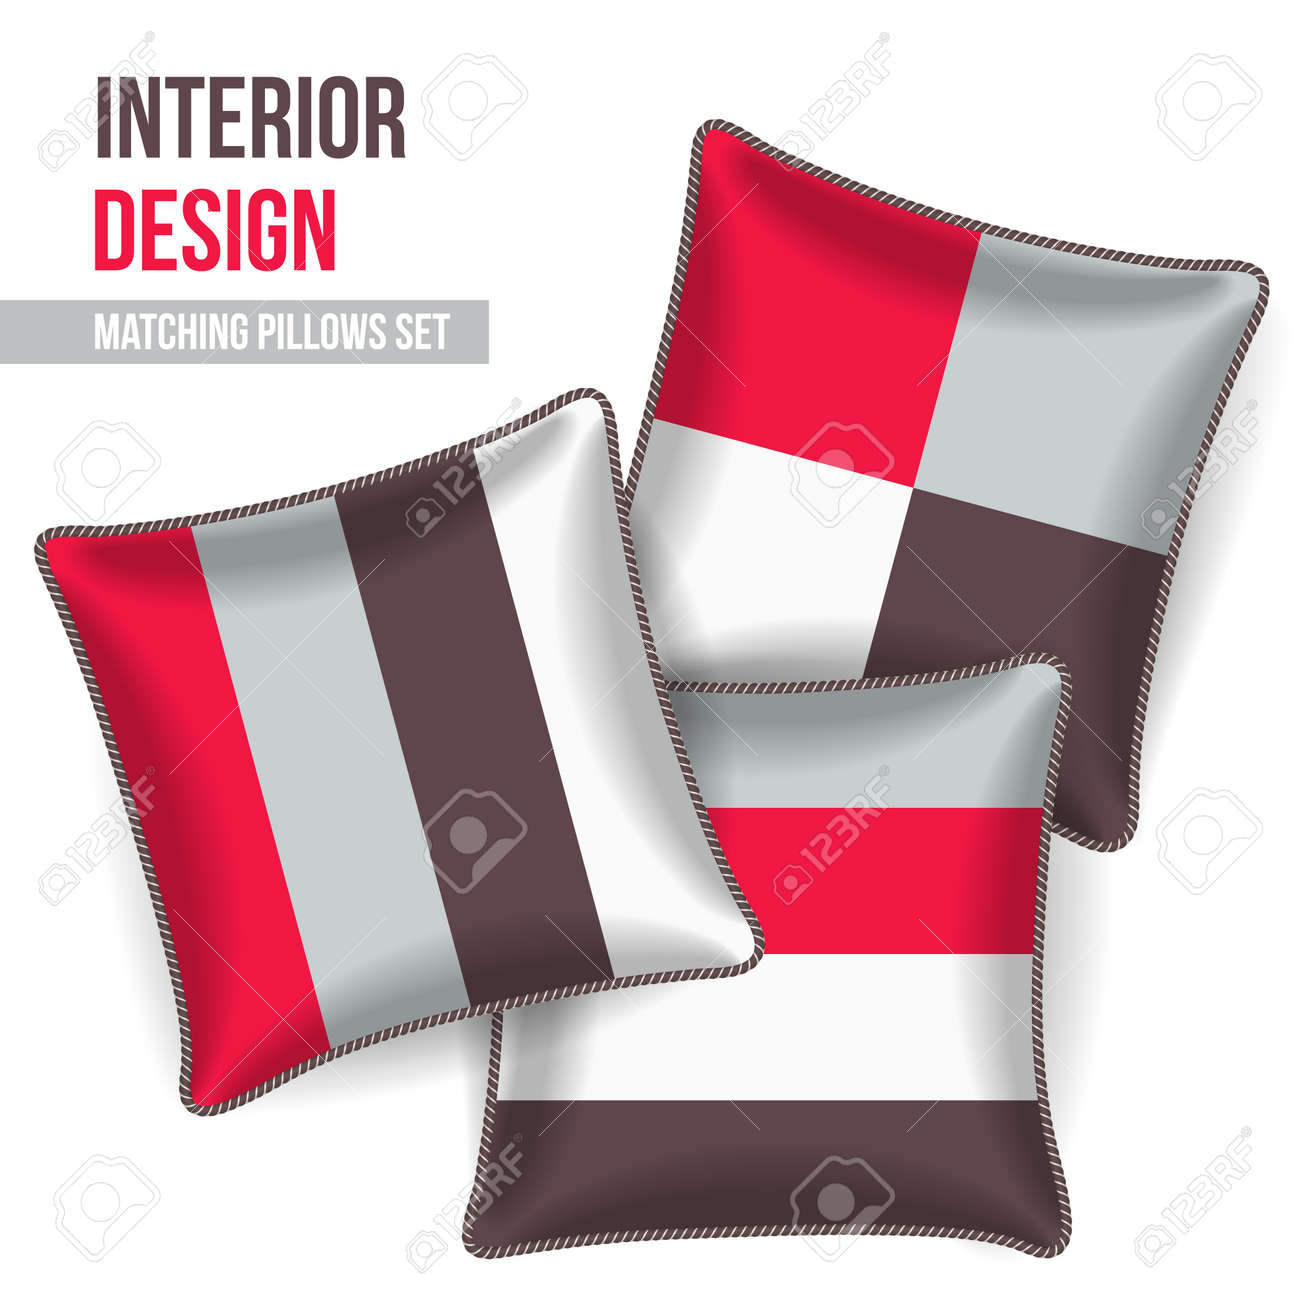 set of 3 matching decorative pillows for interior design pattern stock